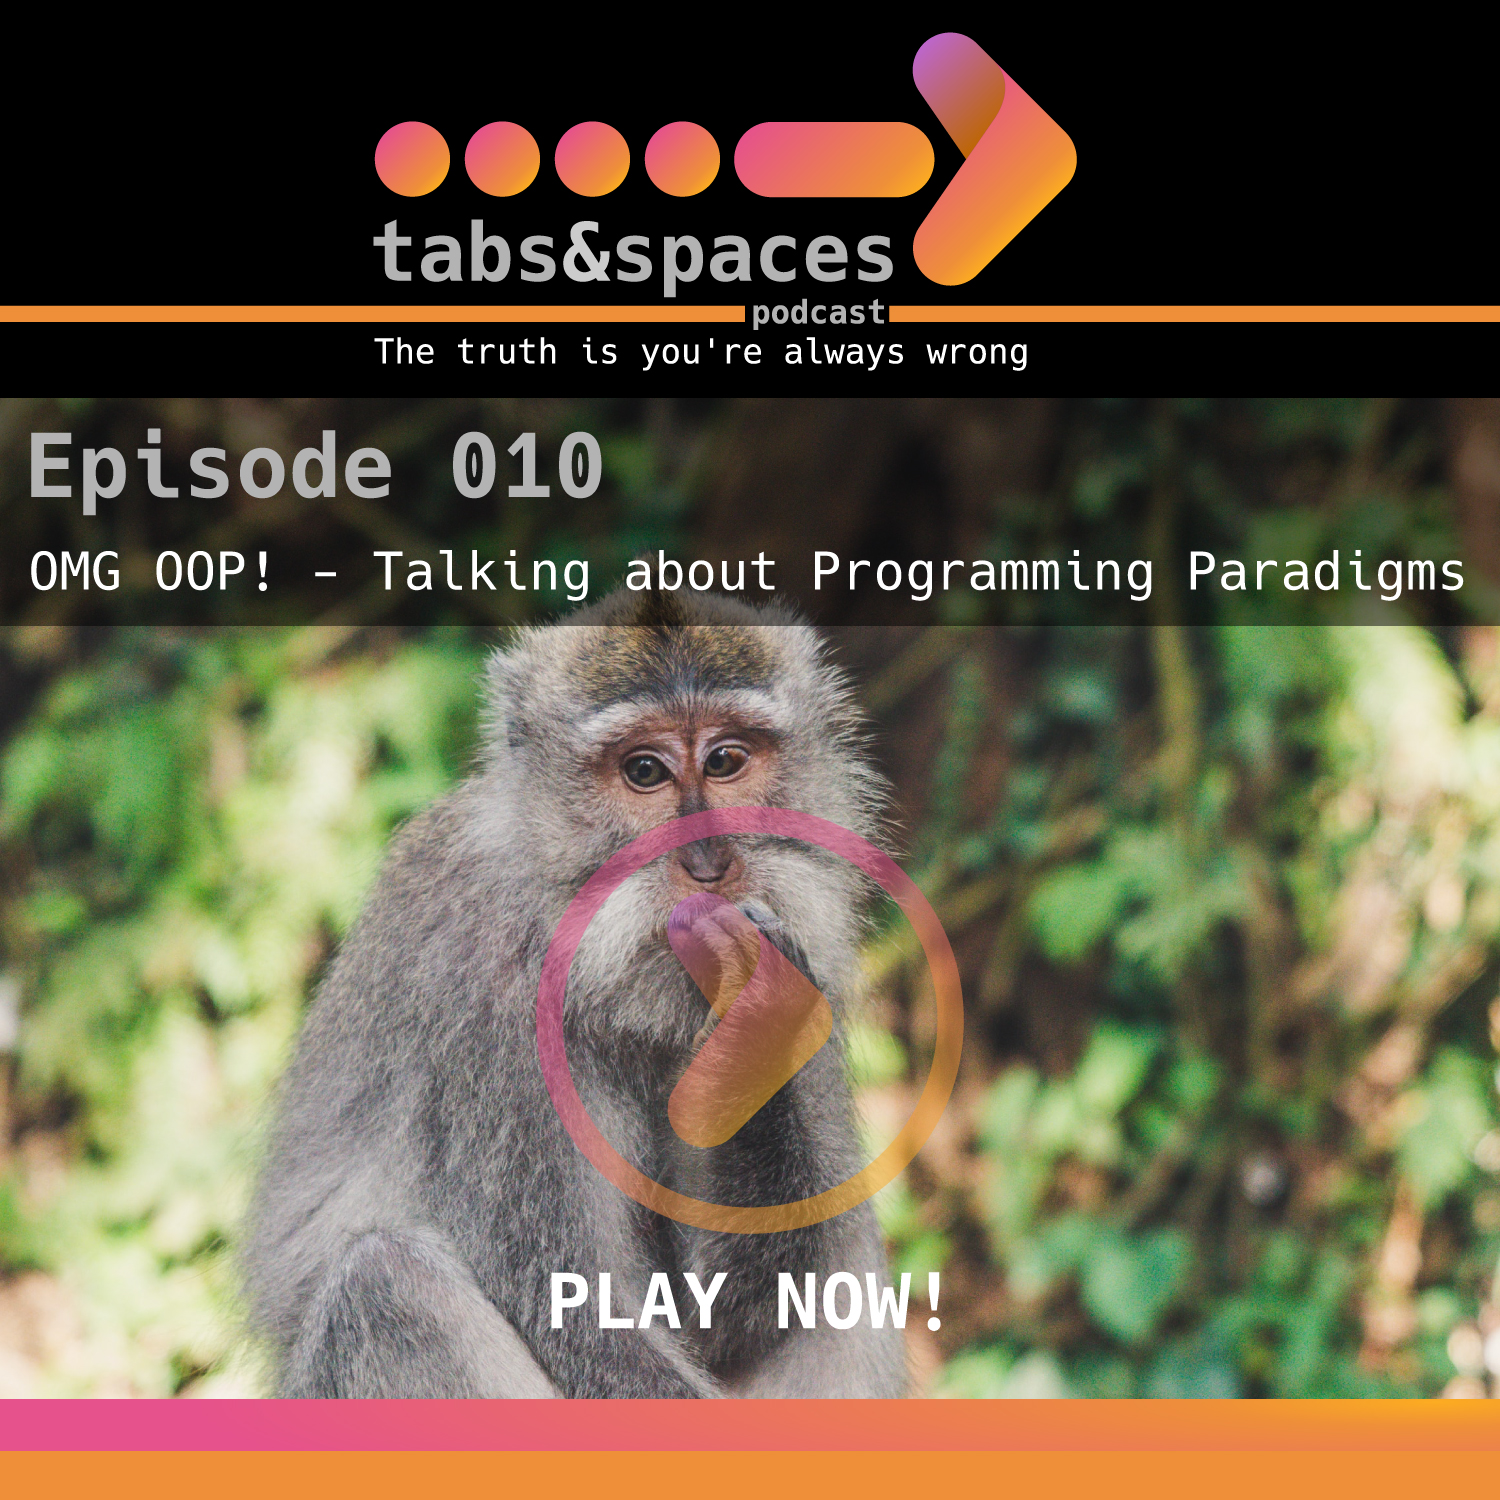 Episode 10 is about programming paradigms and our limited experience with them